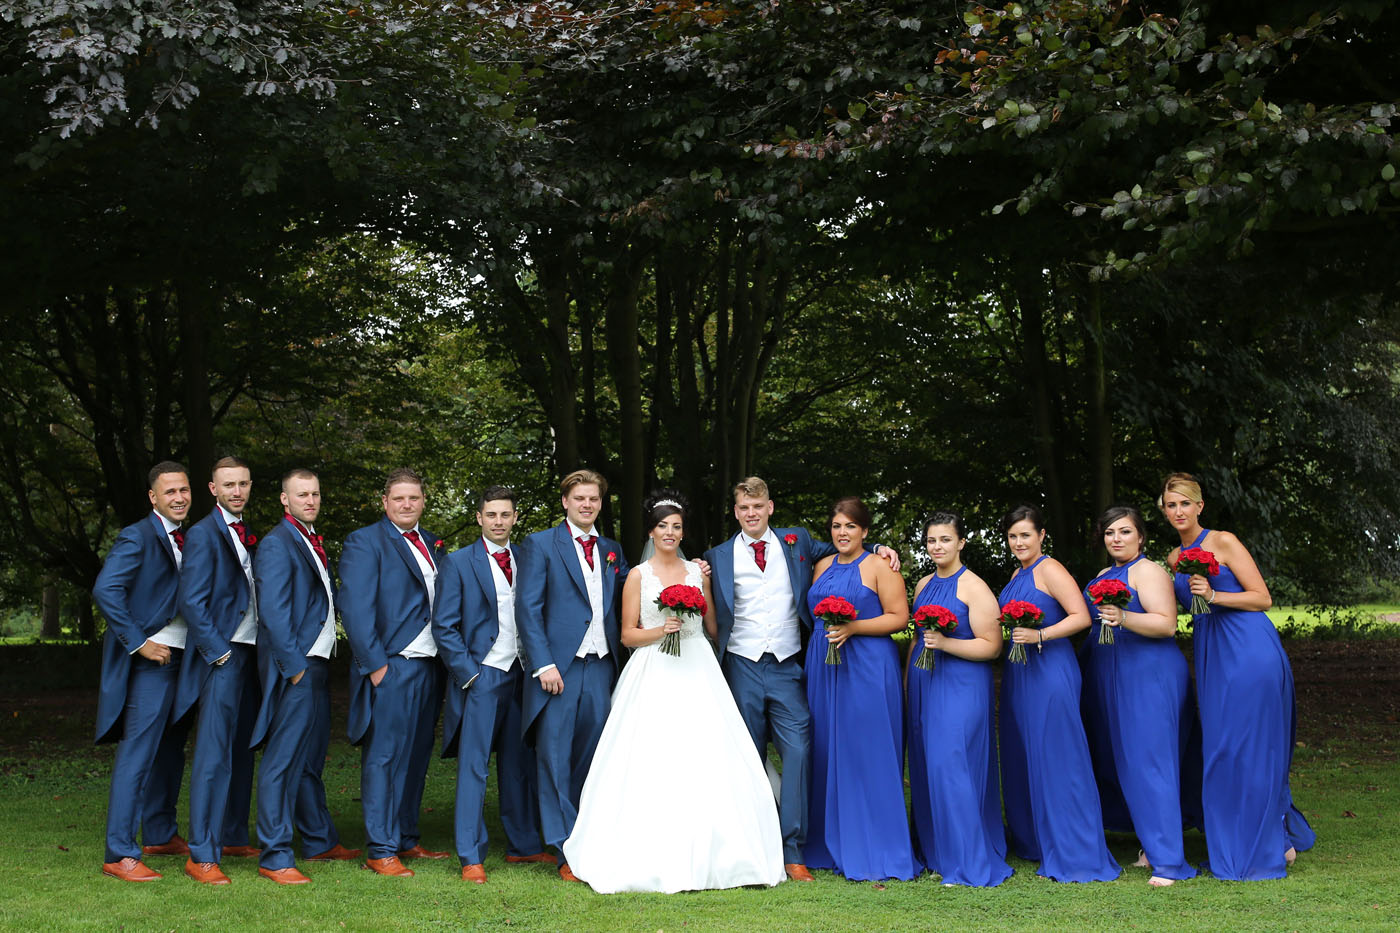 Wedding party wearing blue outside